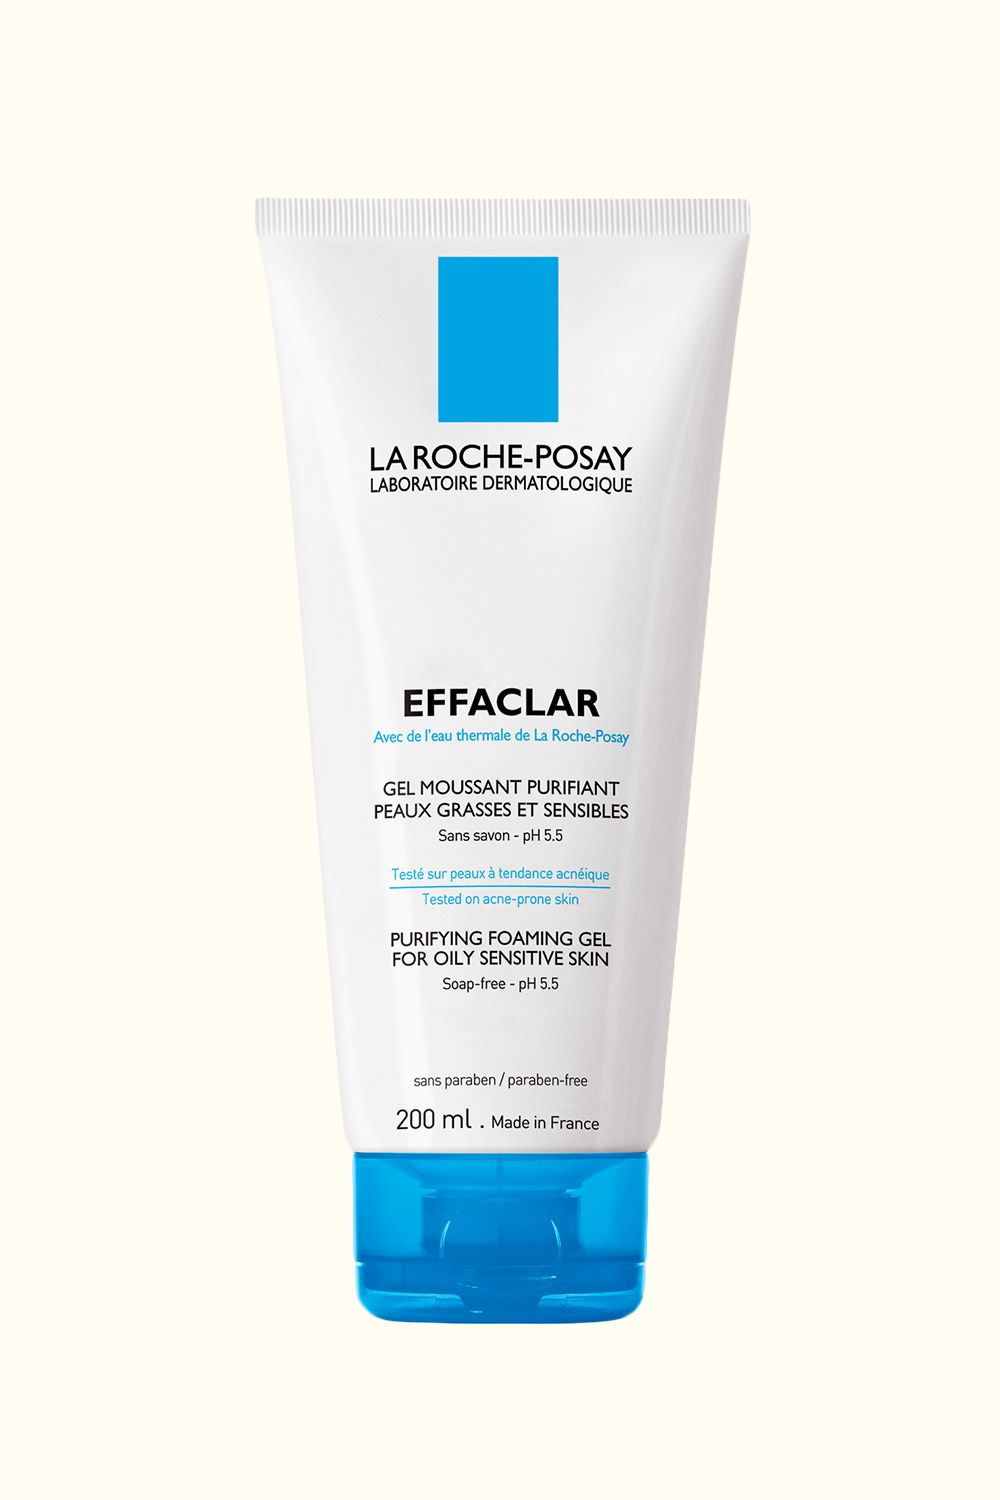 "<p>This thin gel cleanser is super gentle, yet effective for soothing irritation and clearing up breakouts without drying out the skin. Not to mention, it will get rid of every last remnant of makeup.</p><p>La Roche-Posay Effaclar Purifying Foaming Gel Cleanser, $14.99; <a href=""http://bit.ly/1V81Exf"" target=""_blank"">amazon.com</a>.<br></p>"